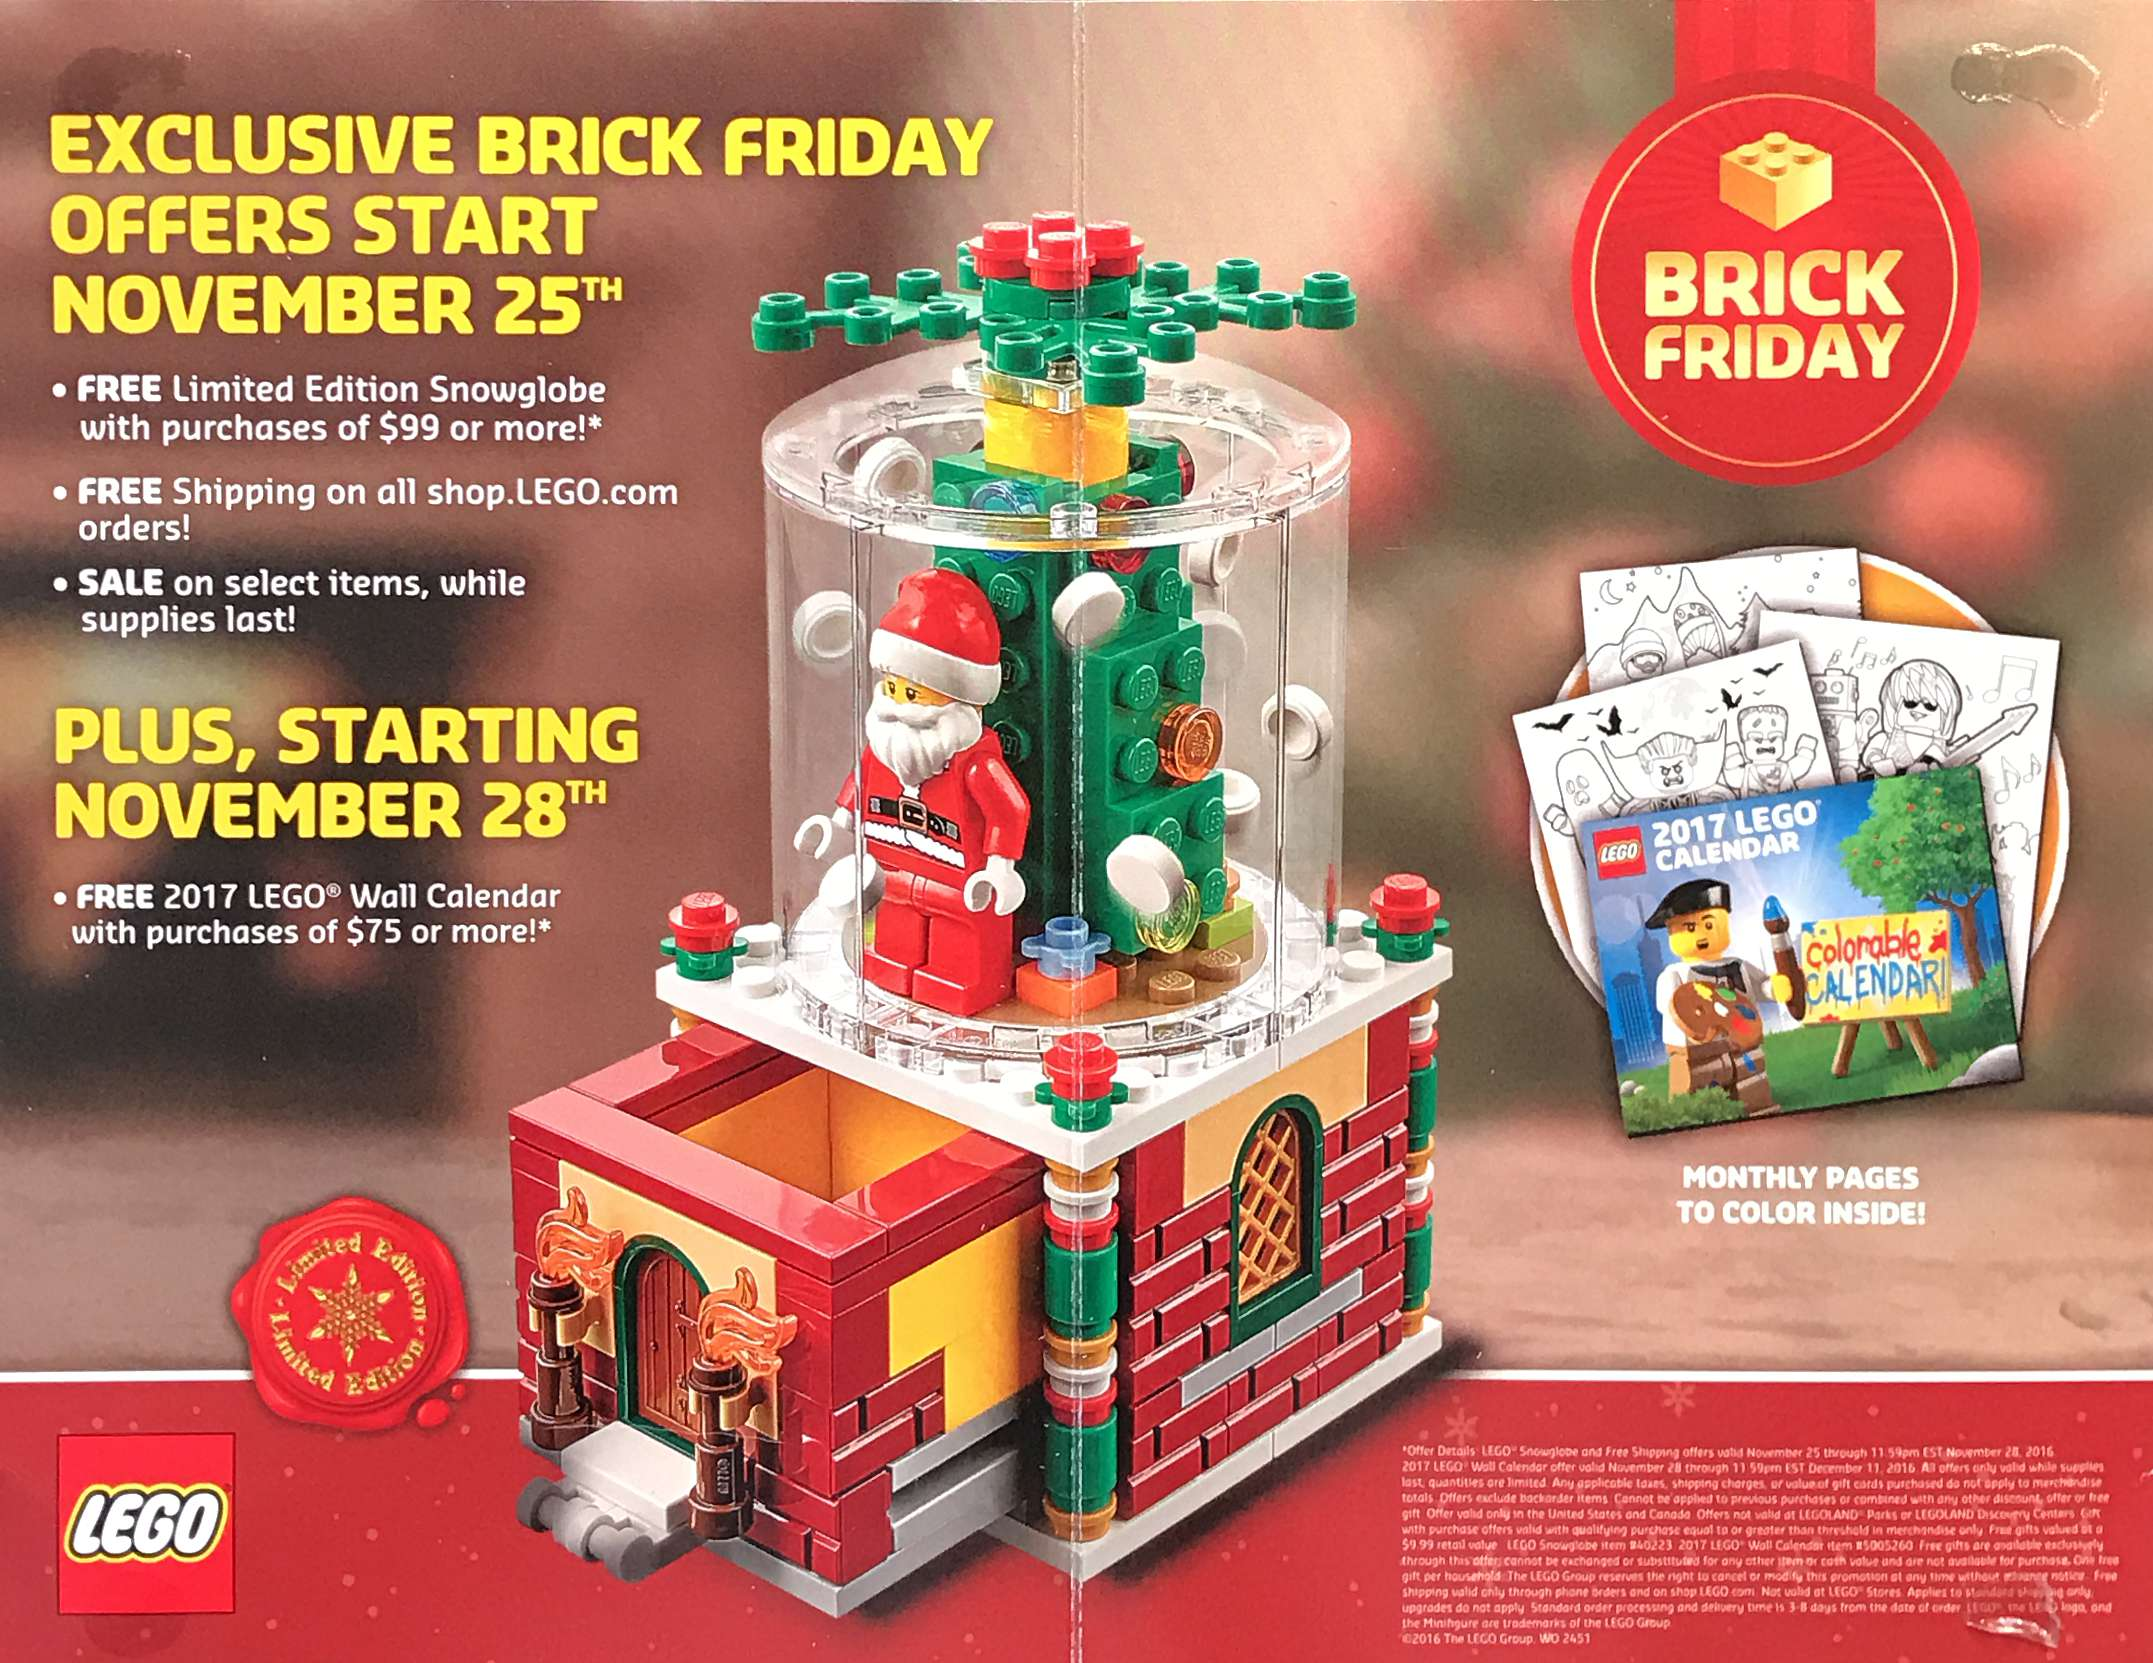 A Lego Home For The Holidays History Of Legos Winter Village 10249 Exclusive Toy Shop Brick Friday Deals And Promotions Announced 2016